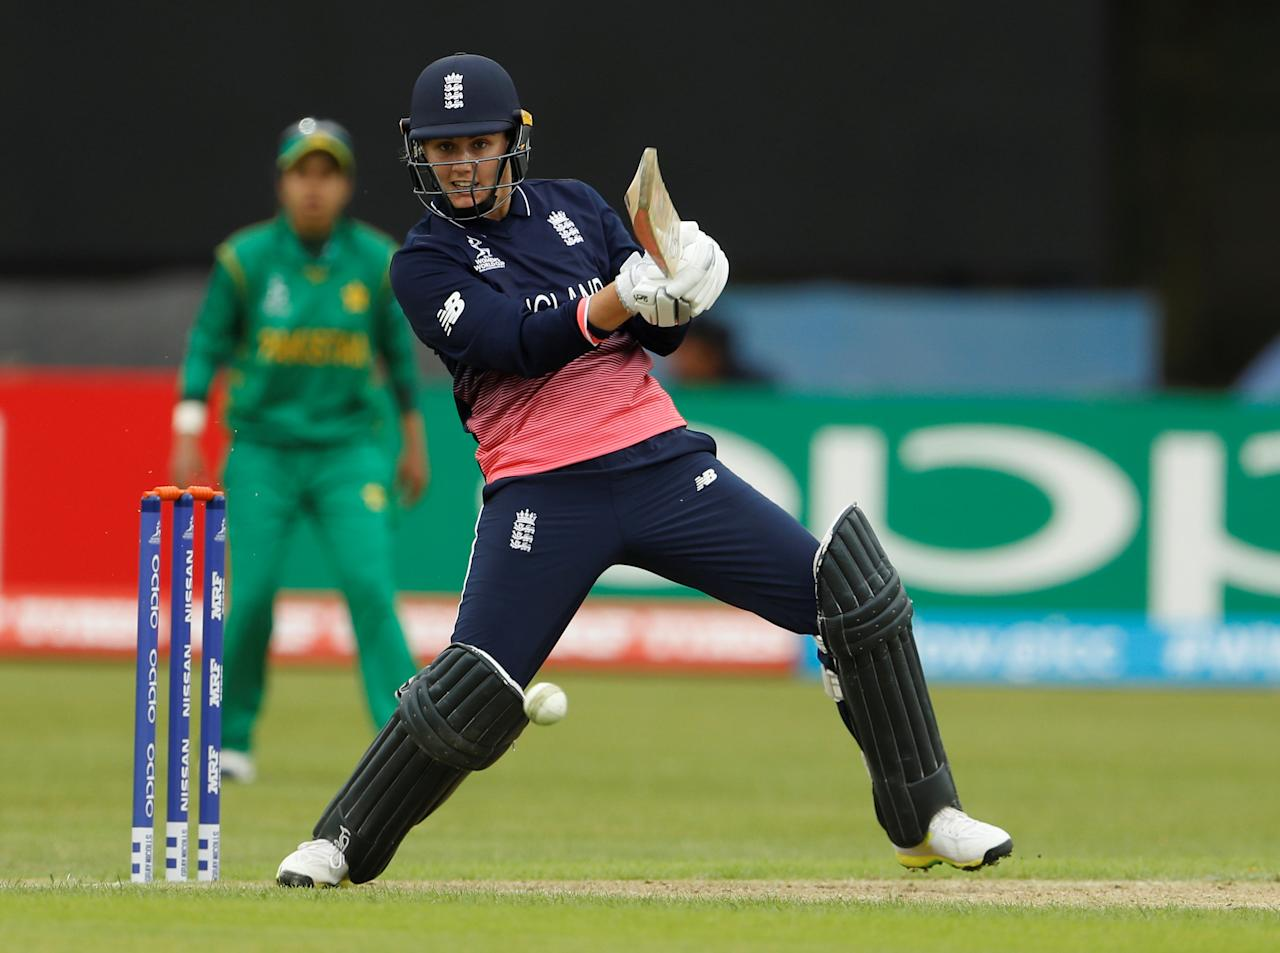 Cricket - England vs Pakistan - Women's Cricket World Cup - Leicester, Britain - June 27, 2017   England's Natalie Sciver in action    Action Images via Reuters/Lee Smith